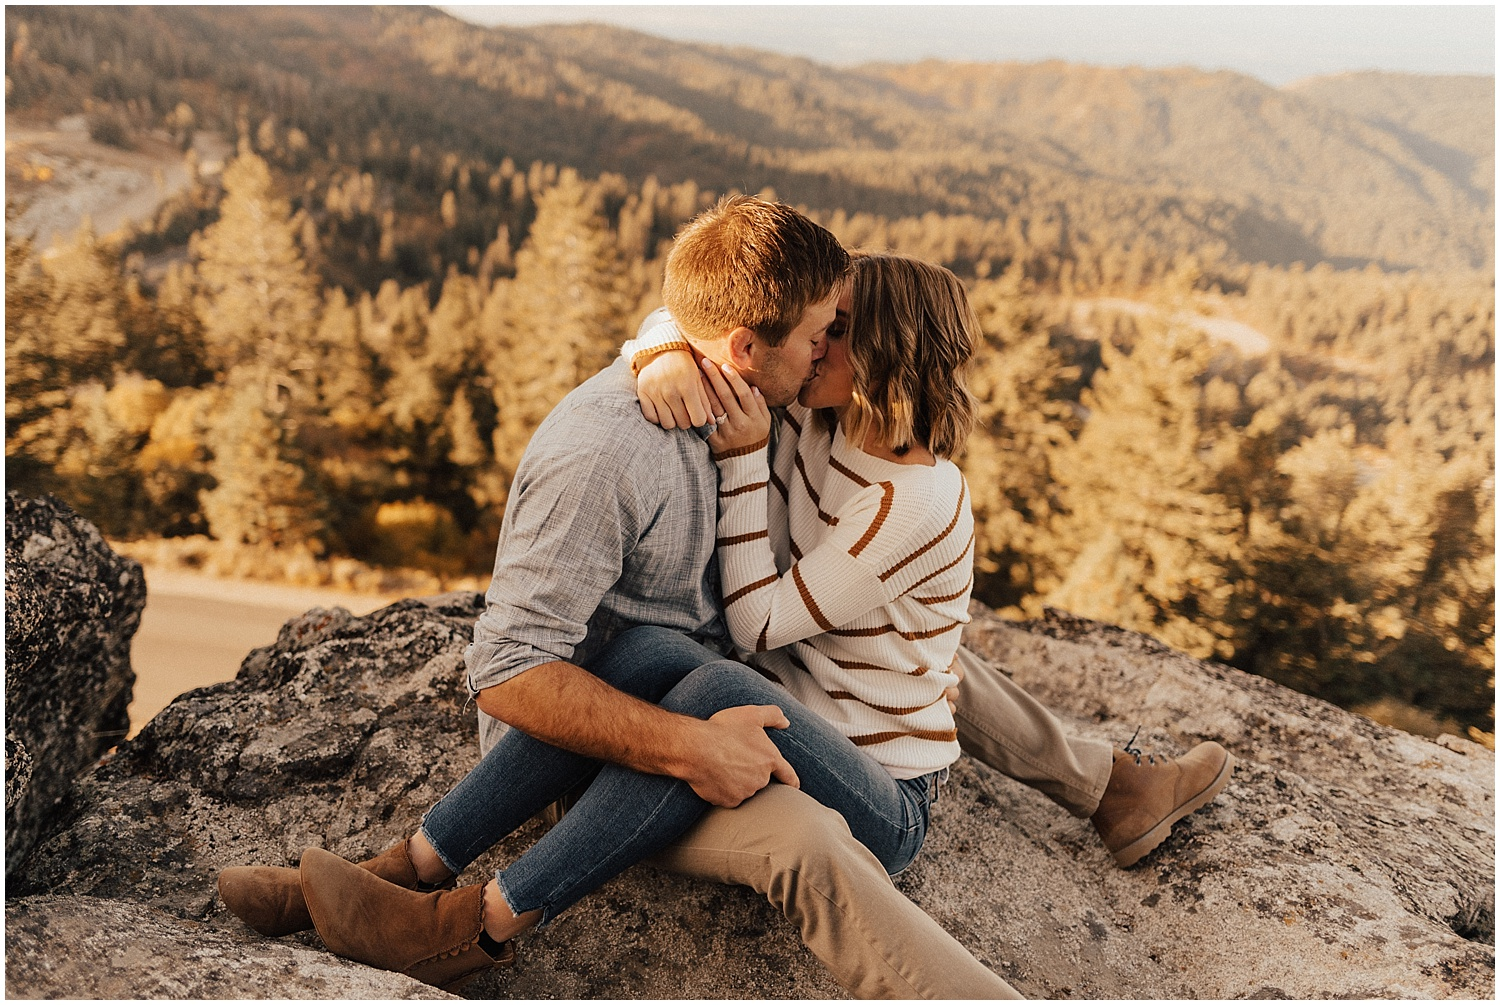 sunrise-mountain-engagement-session-boise-idaho12.jpg